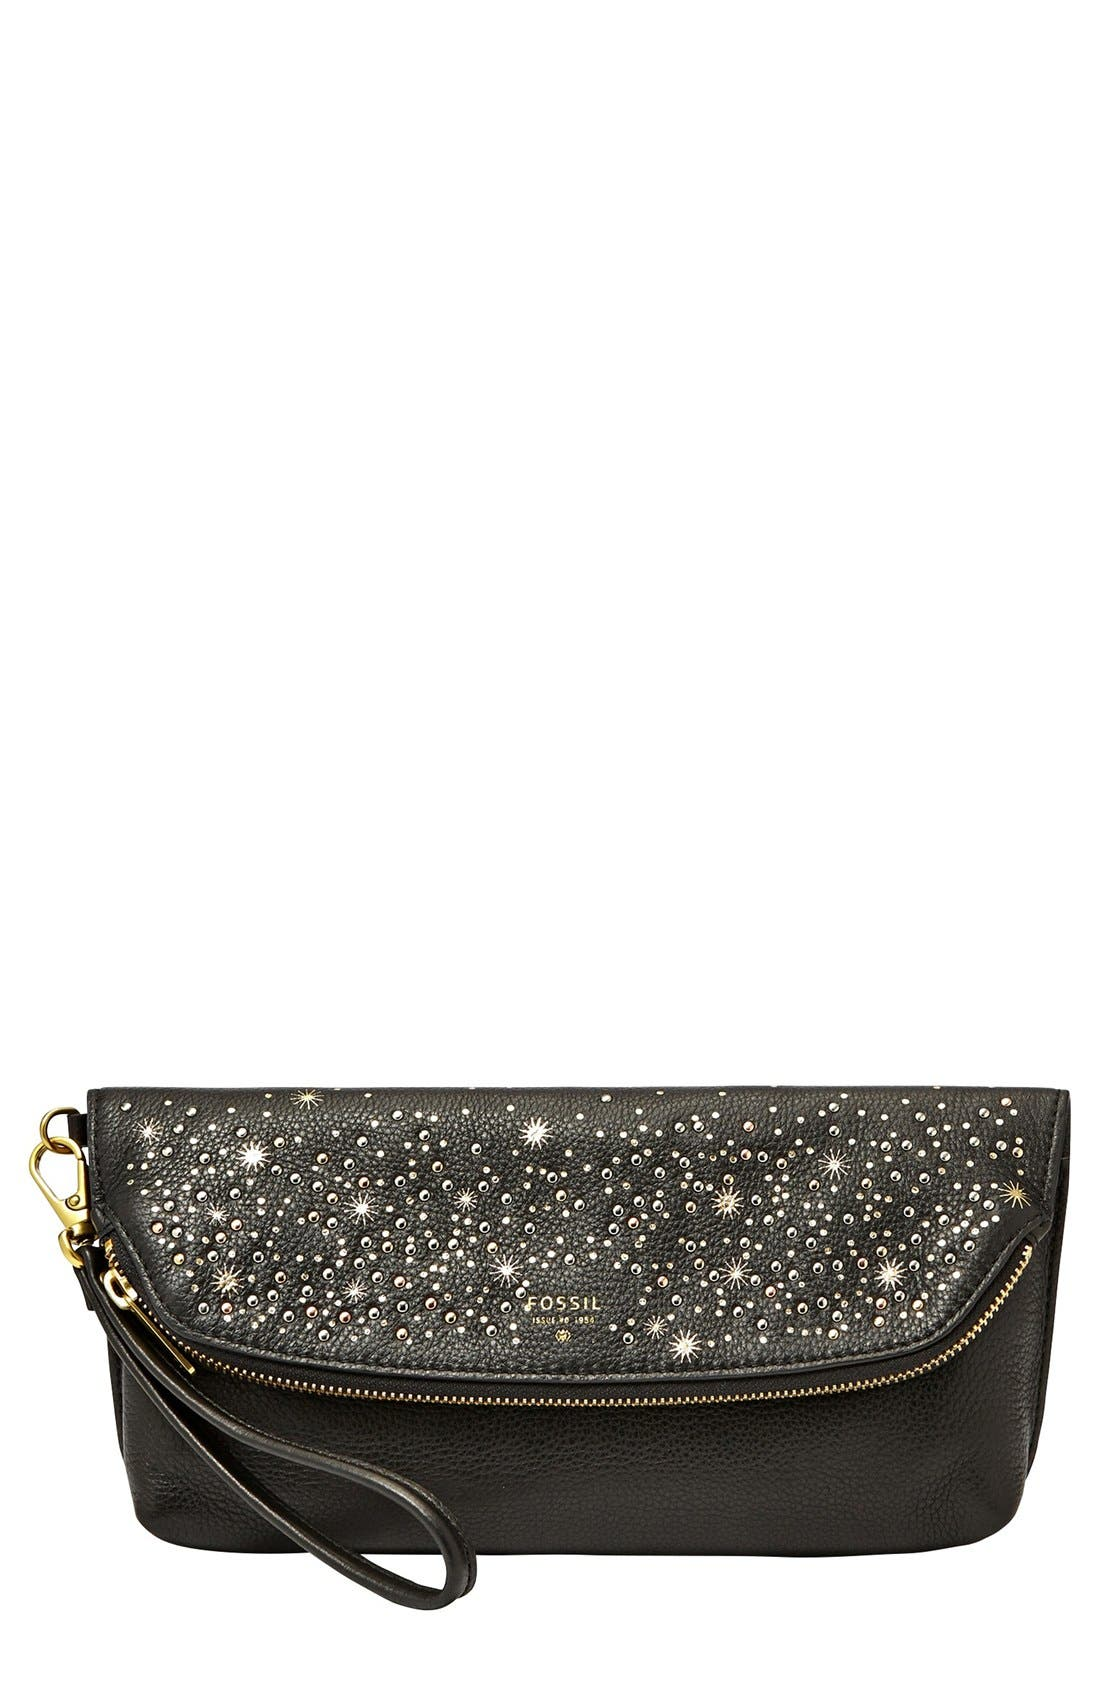 Alternate Image 1 Selected - Fossil 'Preston' Leather Foldover Clutch